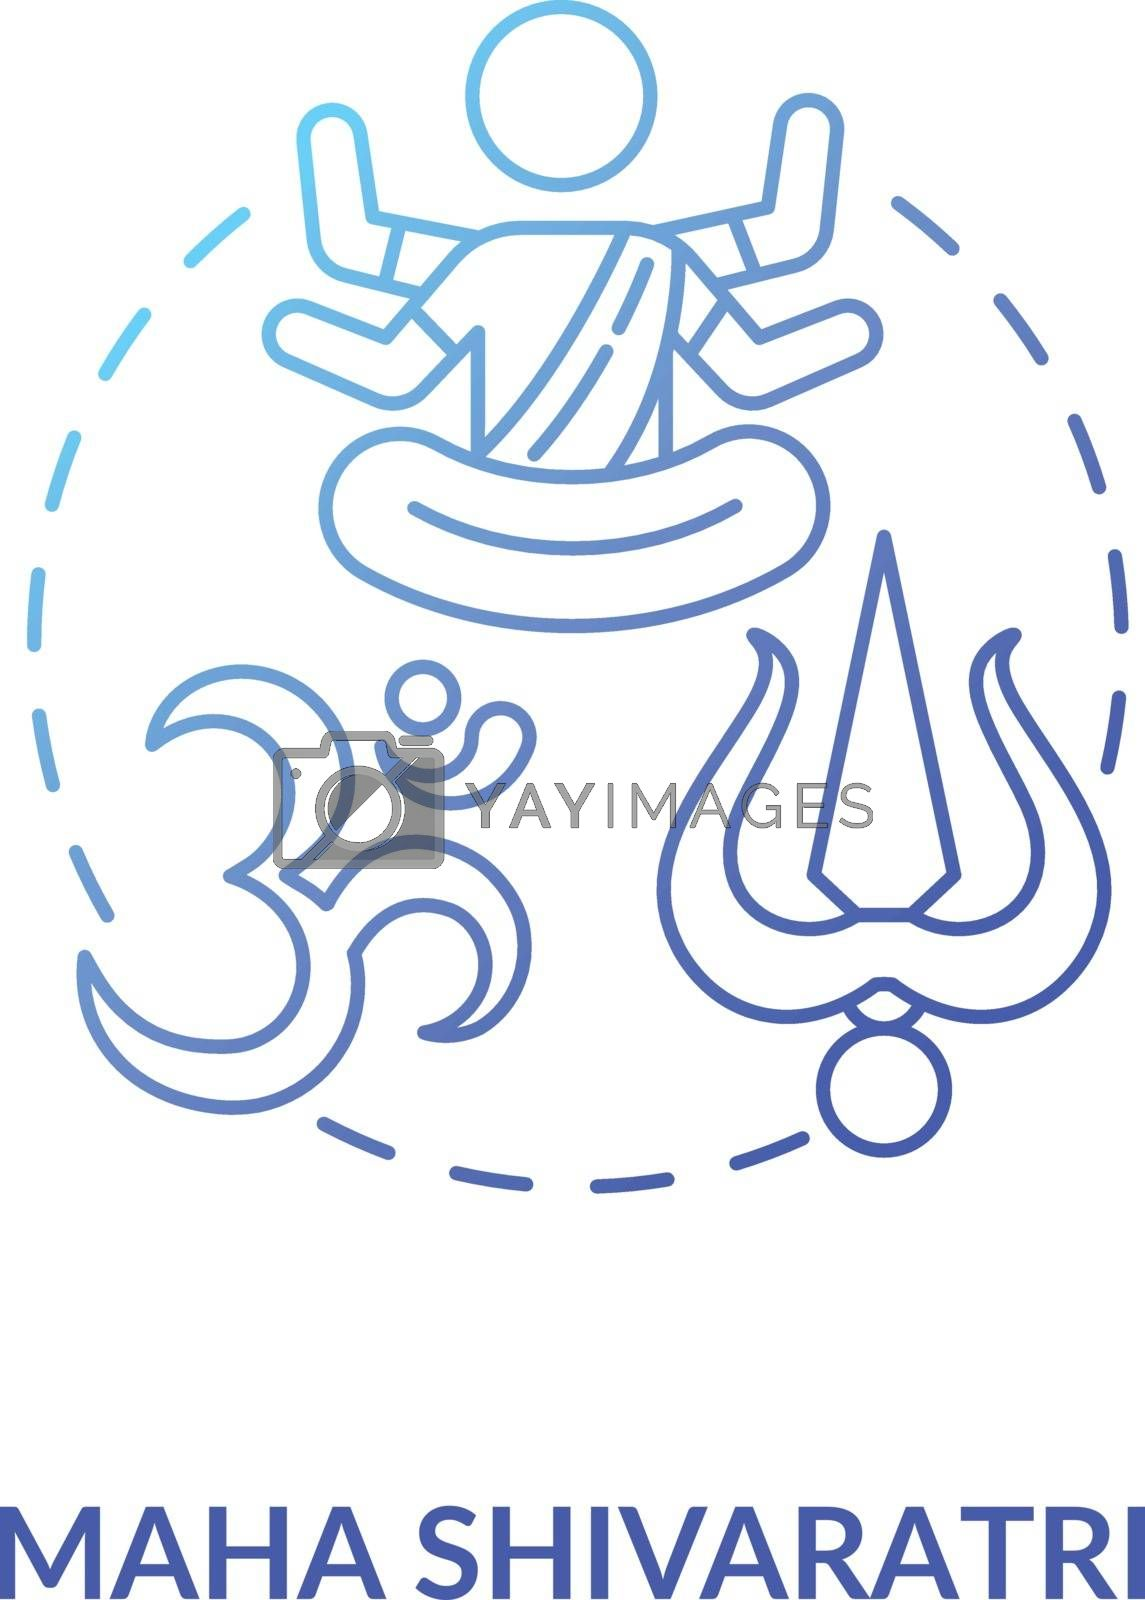 Maha shivaratri concept icon. Traditional hindu festival idea thin line illustration. Religious holiday of India. Shiva and hinduism sign vector isolated outline RGB color drawing